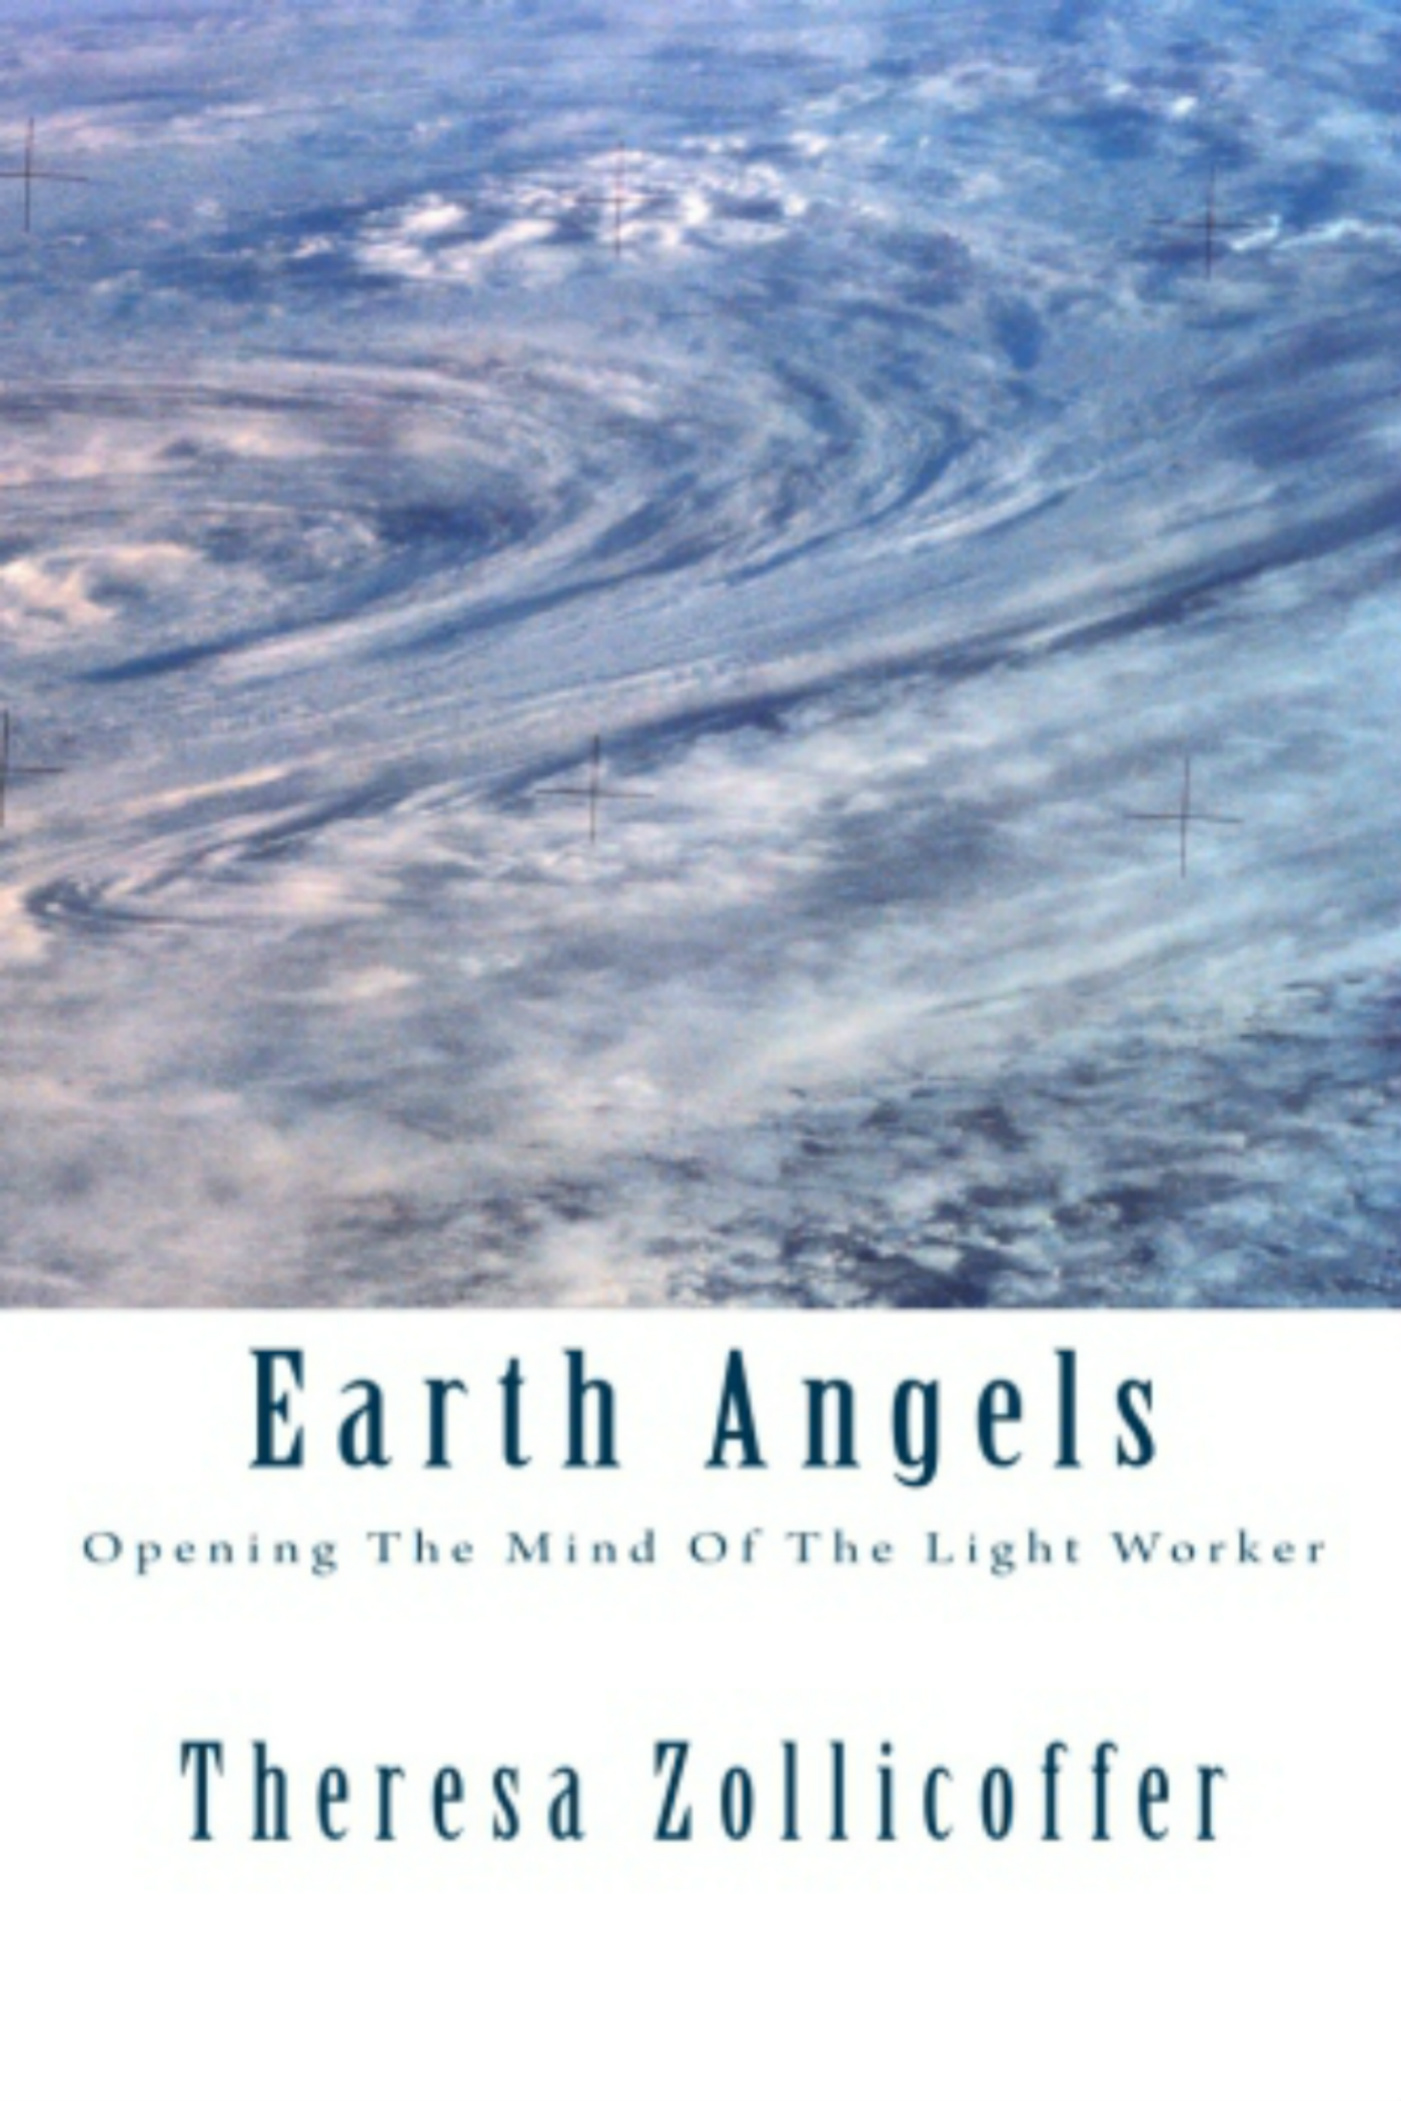 Earth Angels: Opening The Mind Of The Light Worker